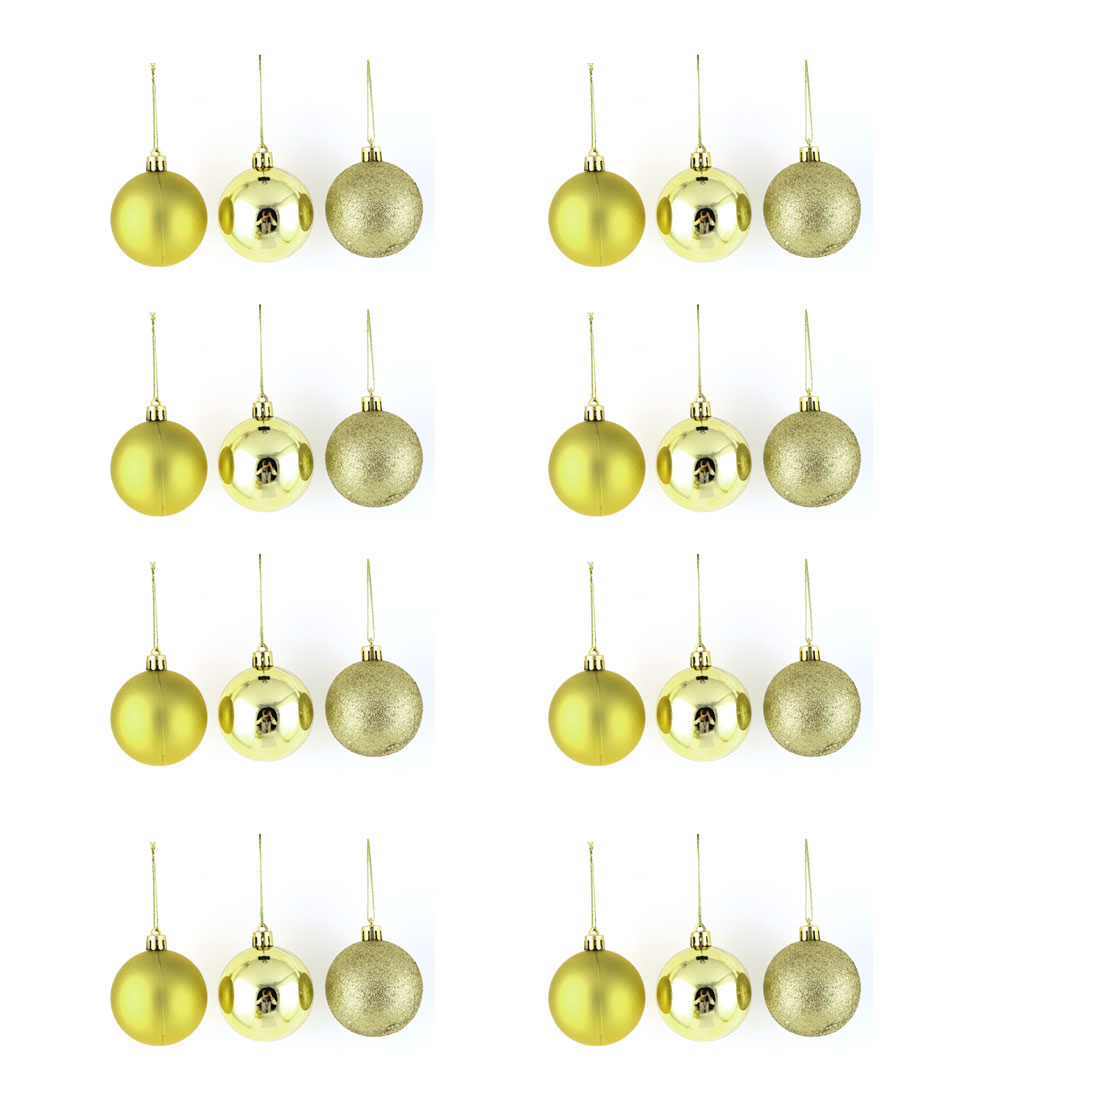 Holiday Christmas Party Plastic Pendant Tree Ornament Ball Gold Tone 6cm Dia 24 Pcs